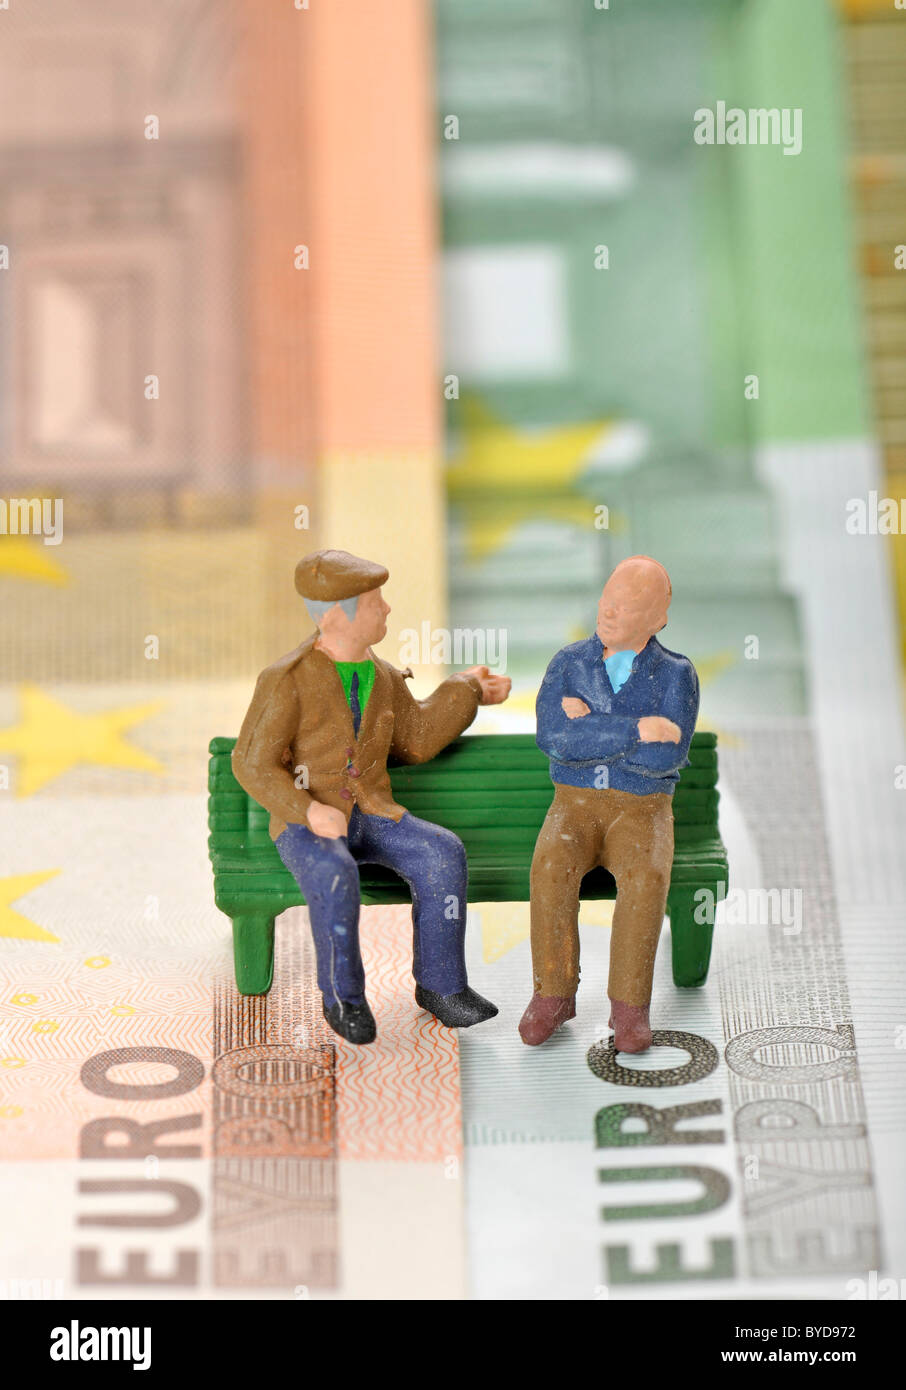 Miniature figures of senior citizens on a park bench on various euro banknotes, symbolic image for pension and retirement - Stock Image